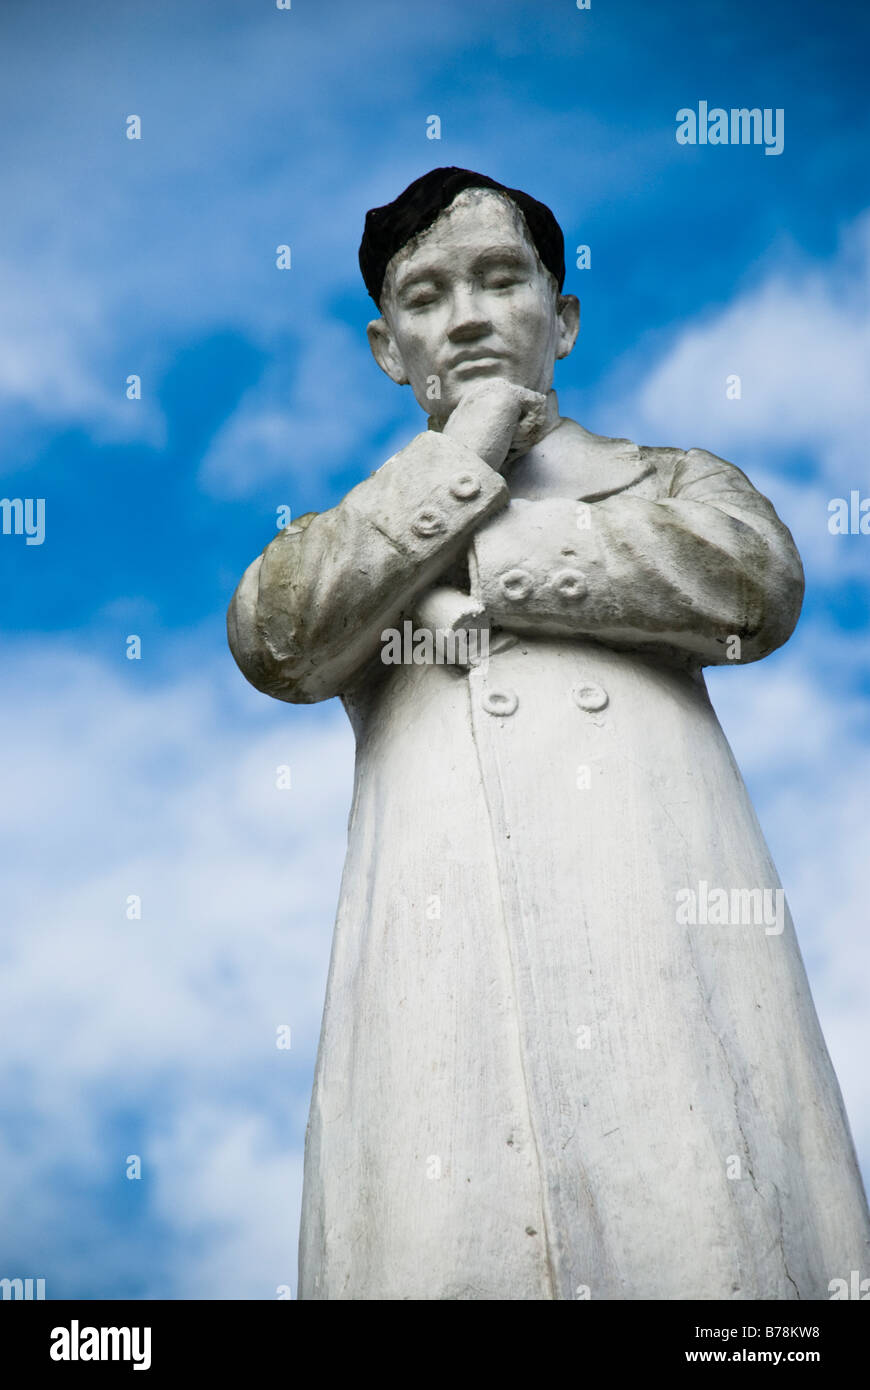 national hero of philippines jose rizal Manga creators: jose rizal more than a filipino hero the japanese comic book on the philippines' national hero is a first in many ways for its artist, writer, and publisher.